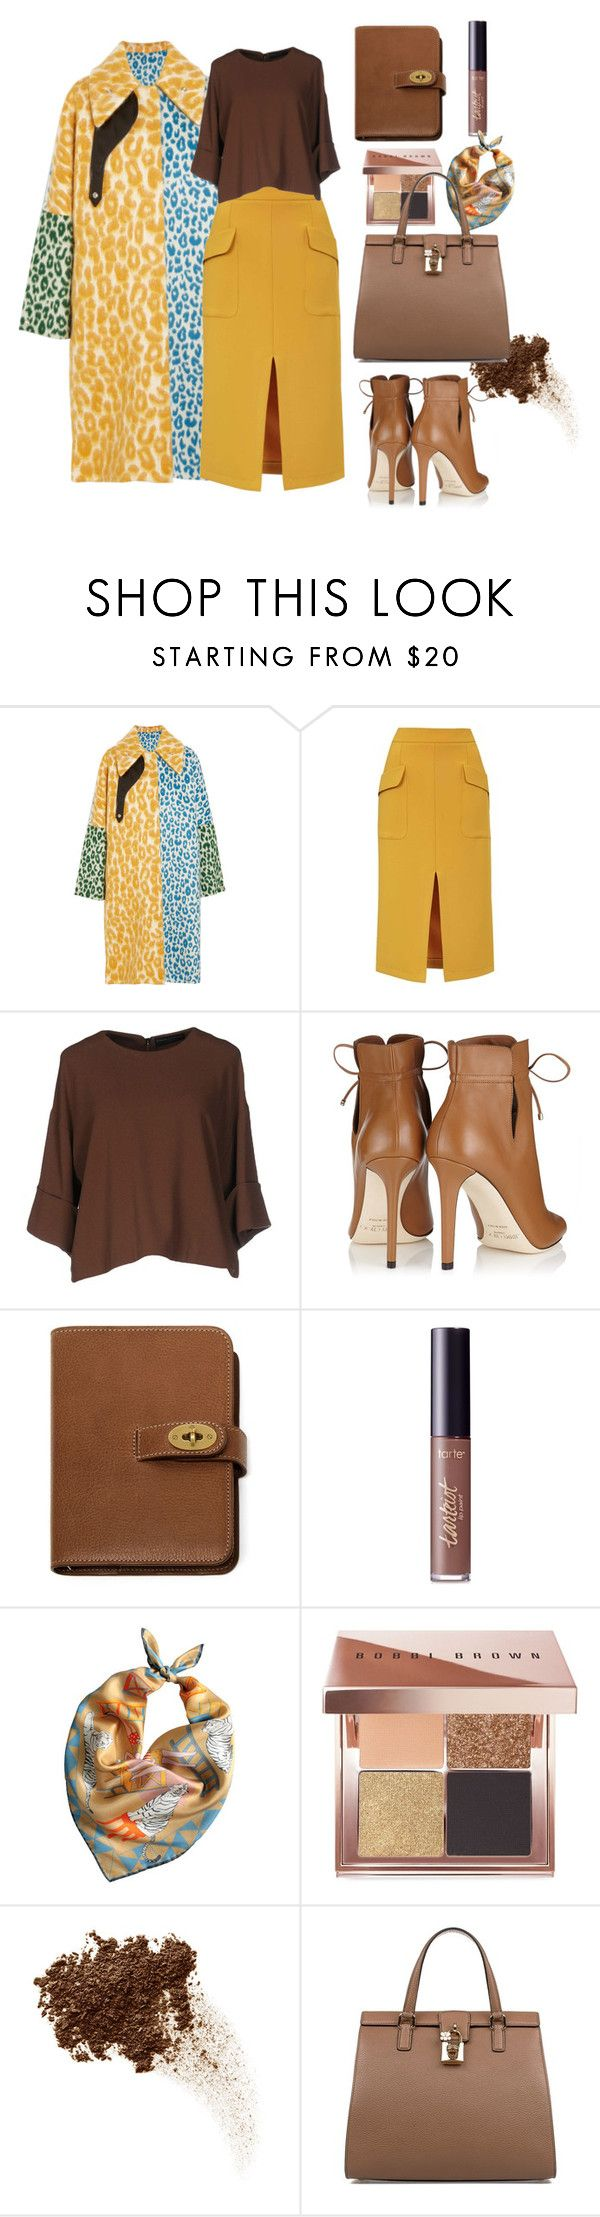 """Fall set"" by styleociety ❤ liked on Polyvore featuring Acne Studios, Topshop, Cristina Gavioli, Jimmy Choo, Mulberry, tarte, MABEL, Bobbi Brown Cosmetics and Dolce&Gabbana"